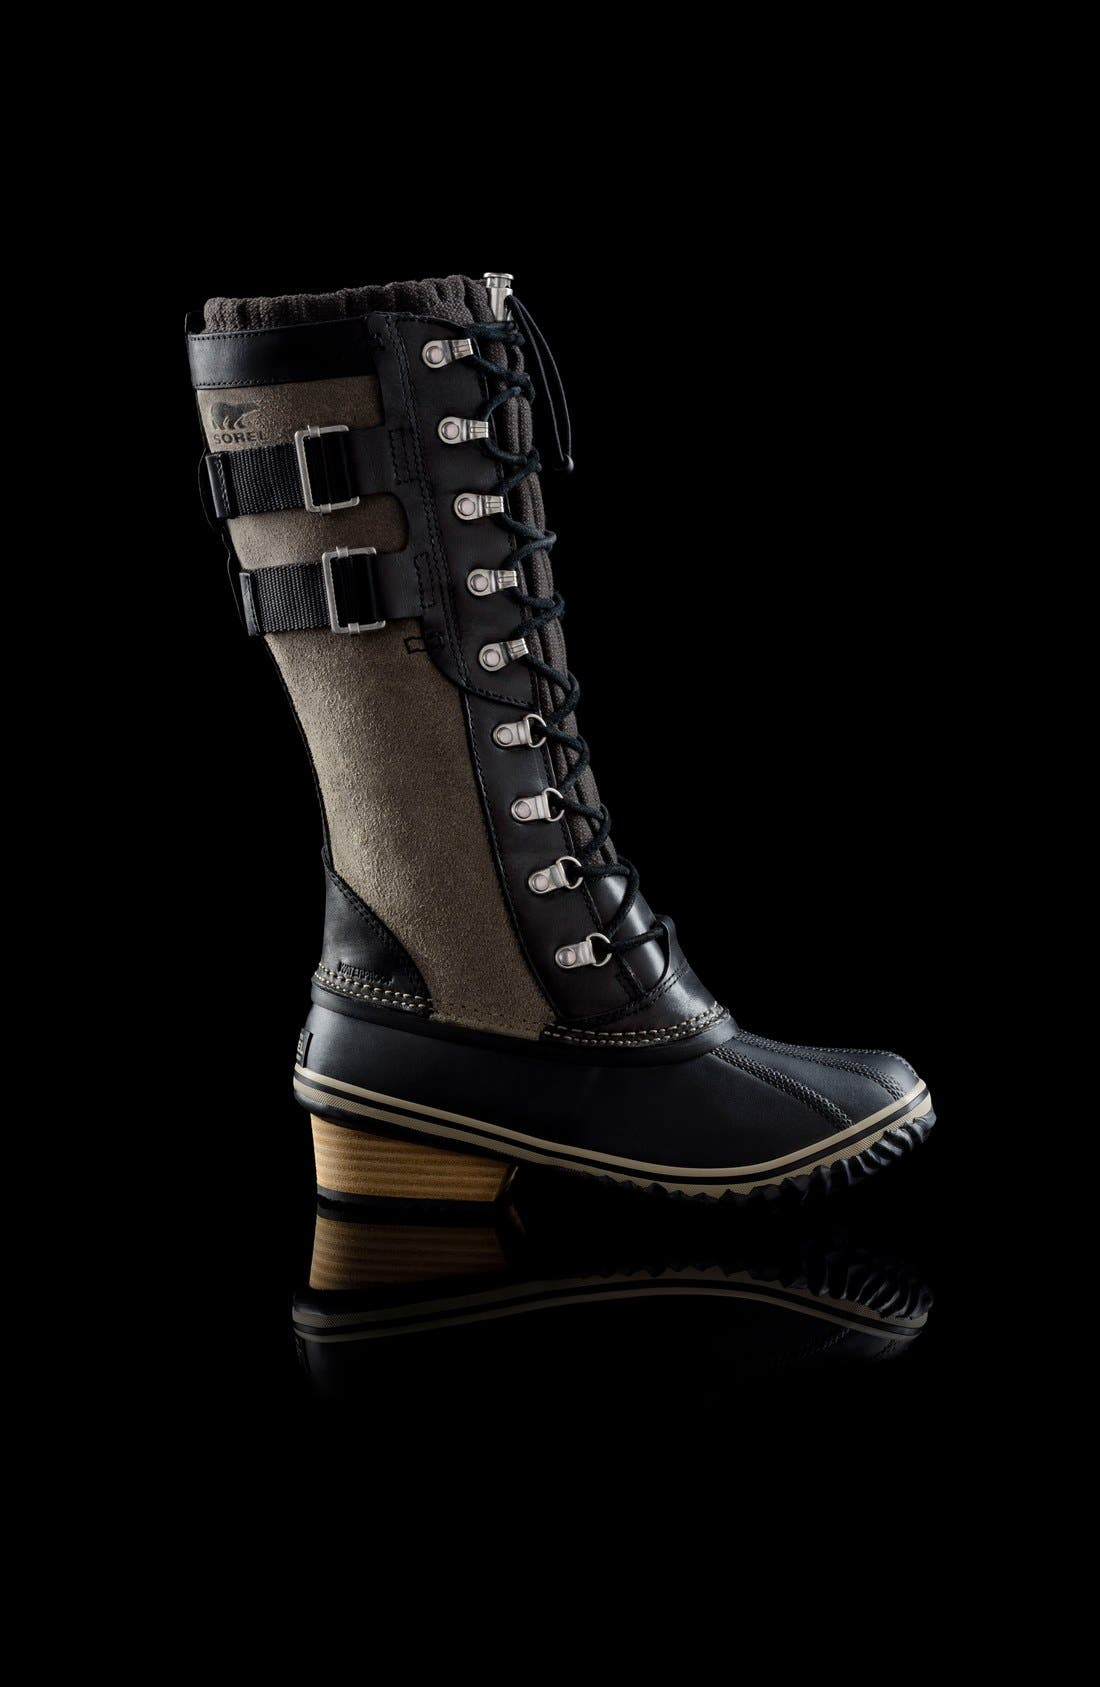 'Conquest Carly II' Waterproof Mid Calf Boot,                             Alternate thumbnail 5, color,                             Black